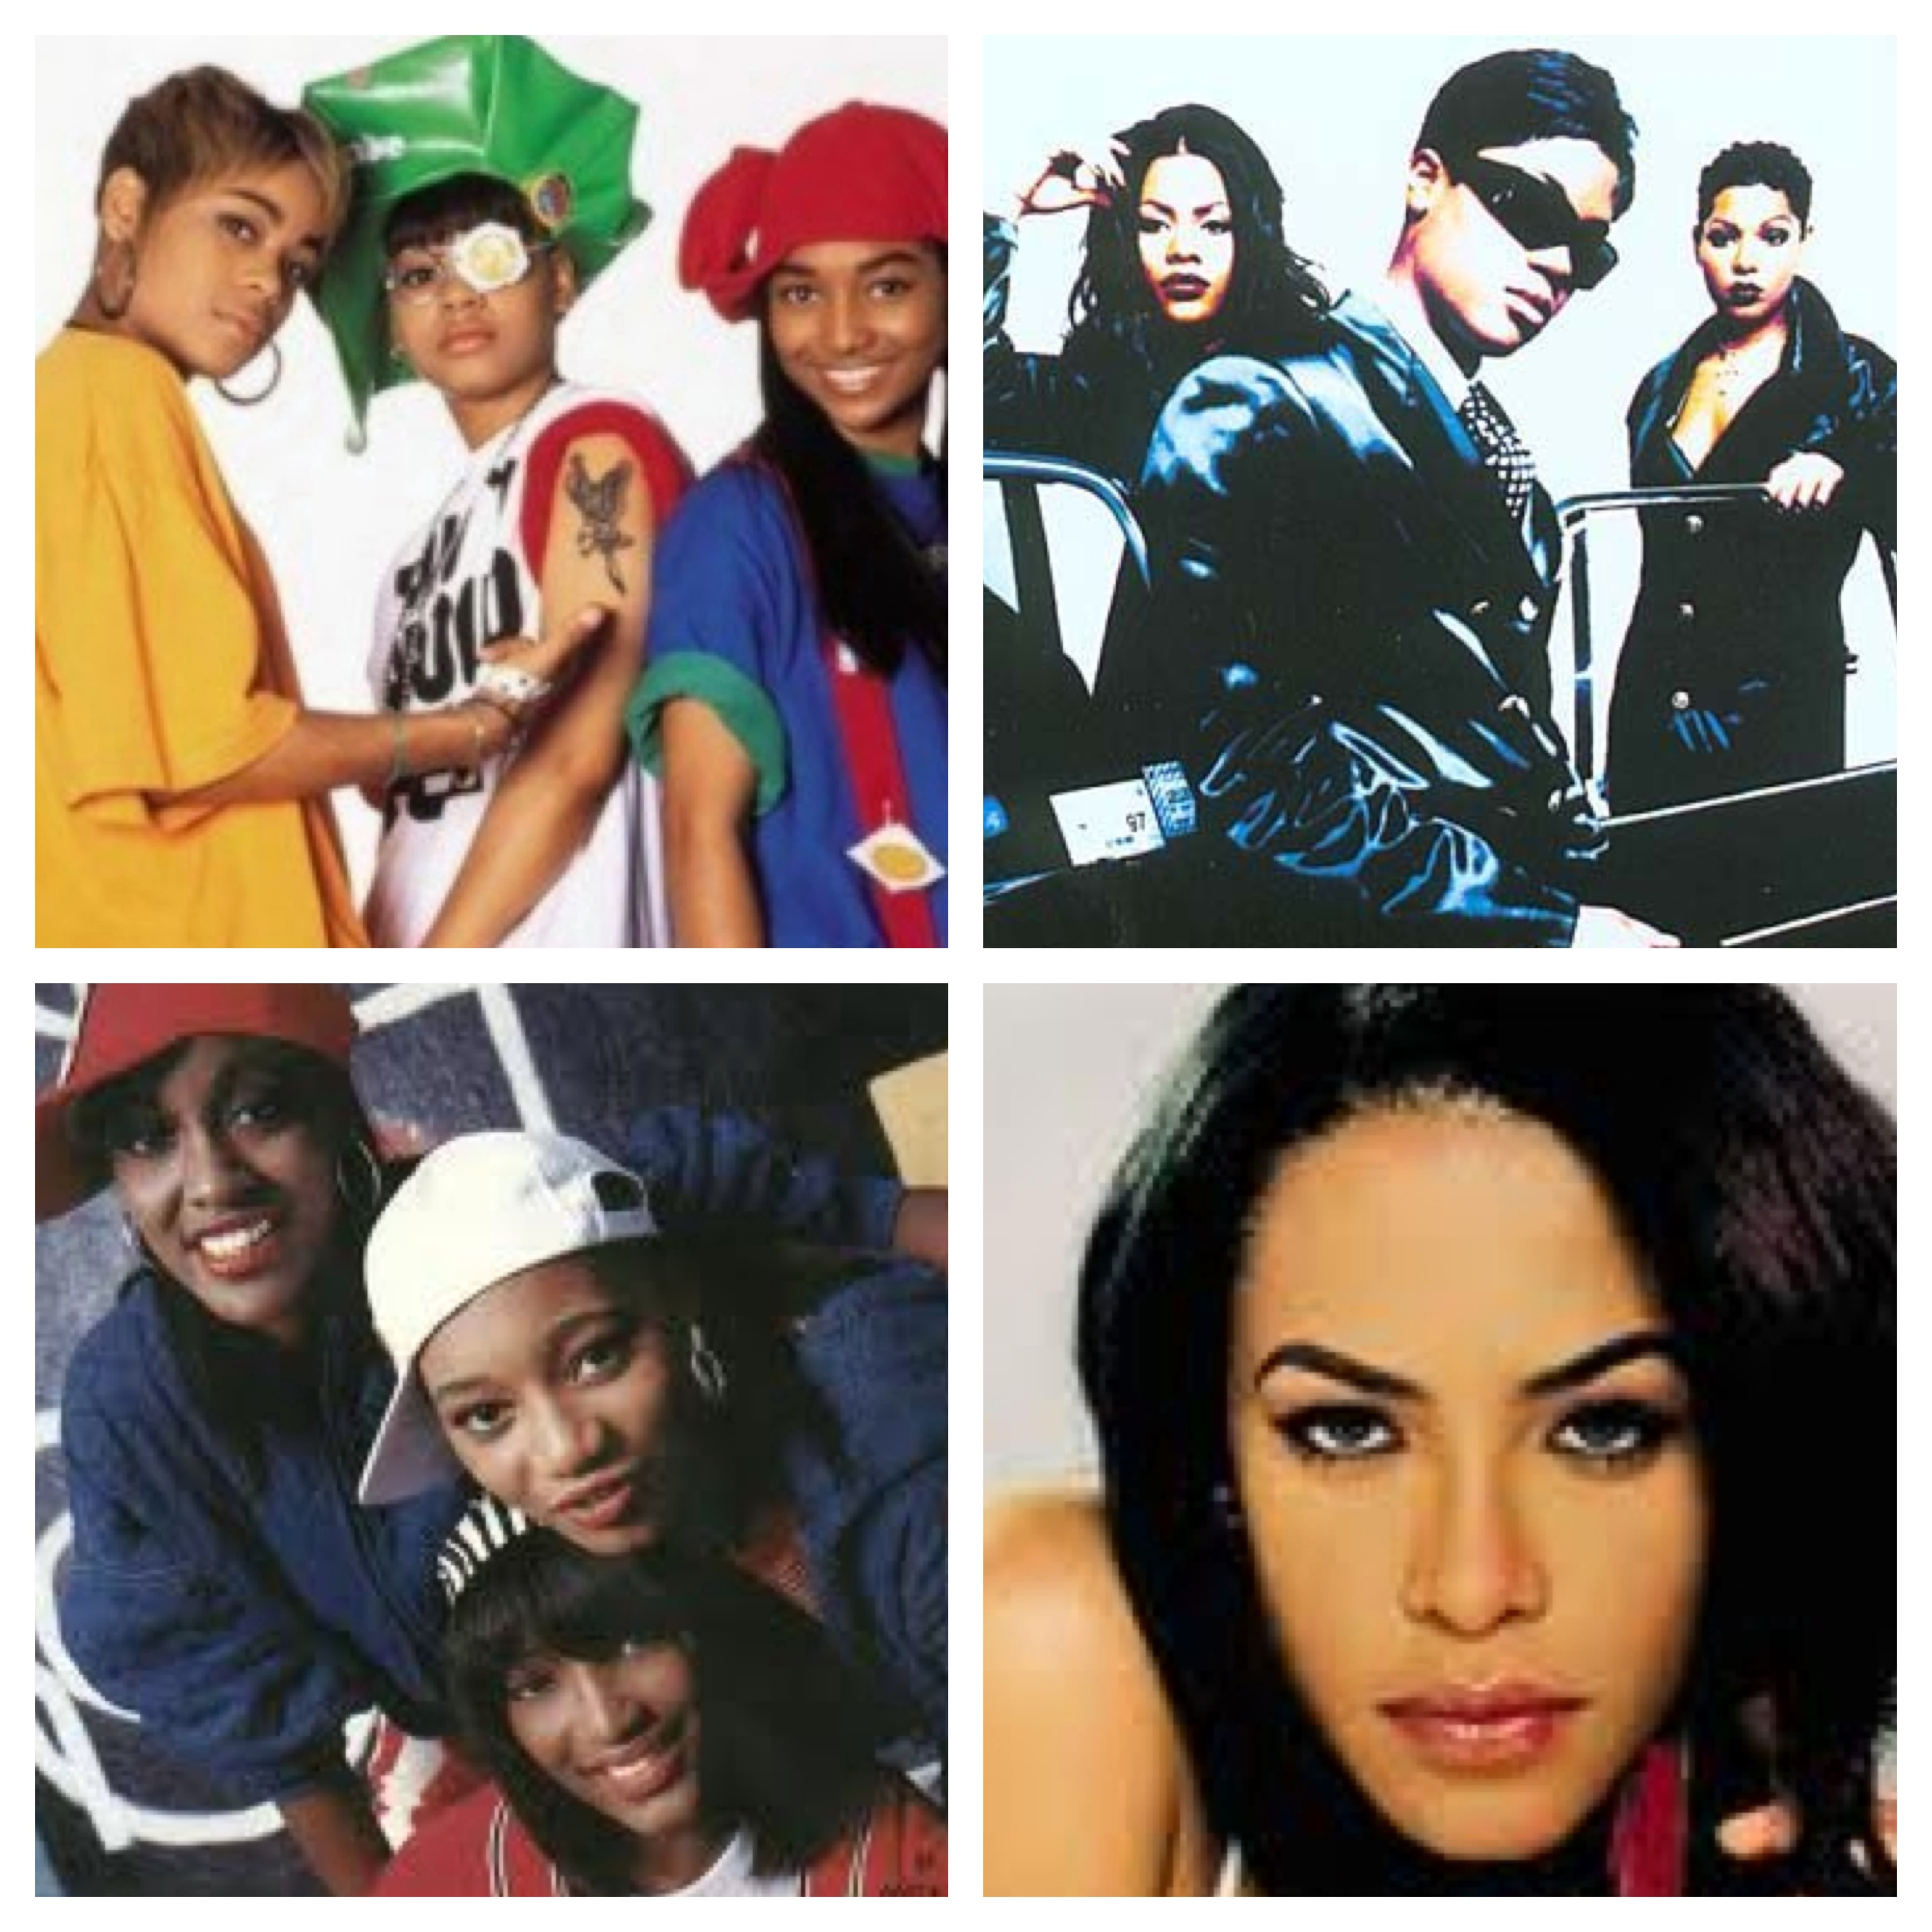 Music artists from the 90s the image for 90 s house music songs